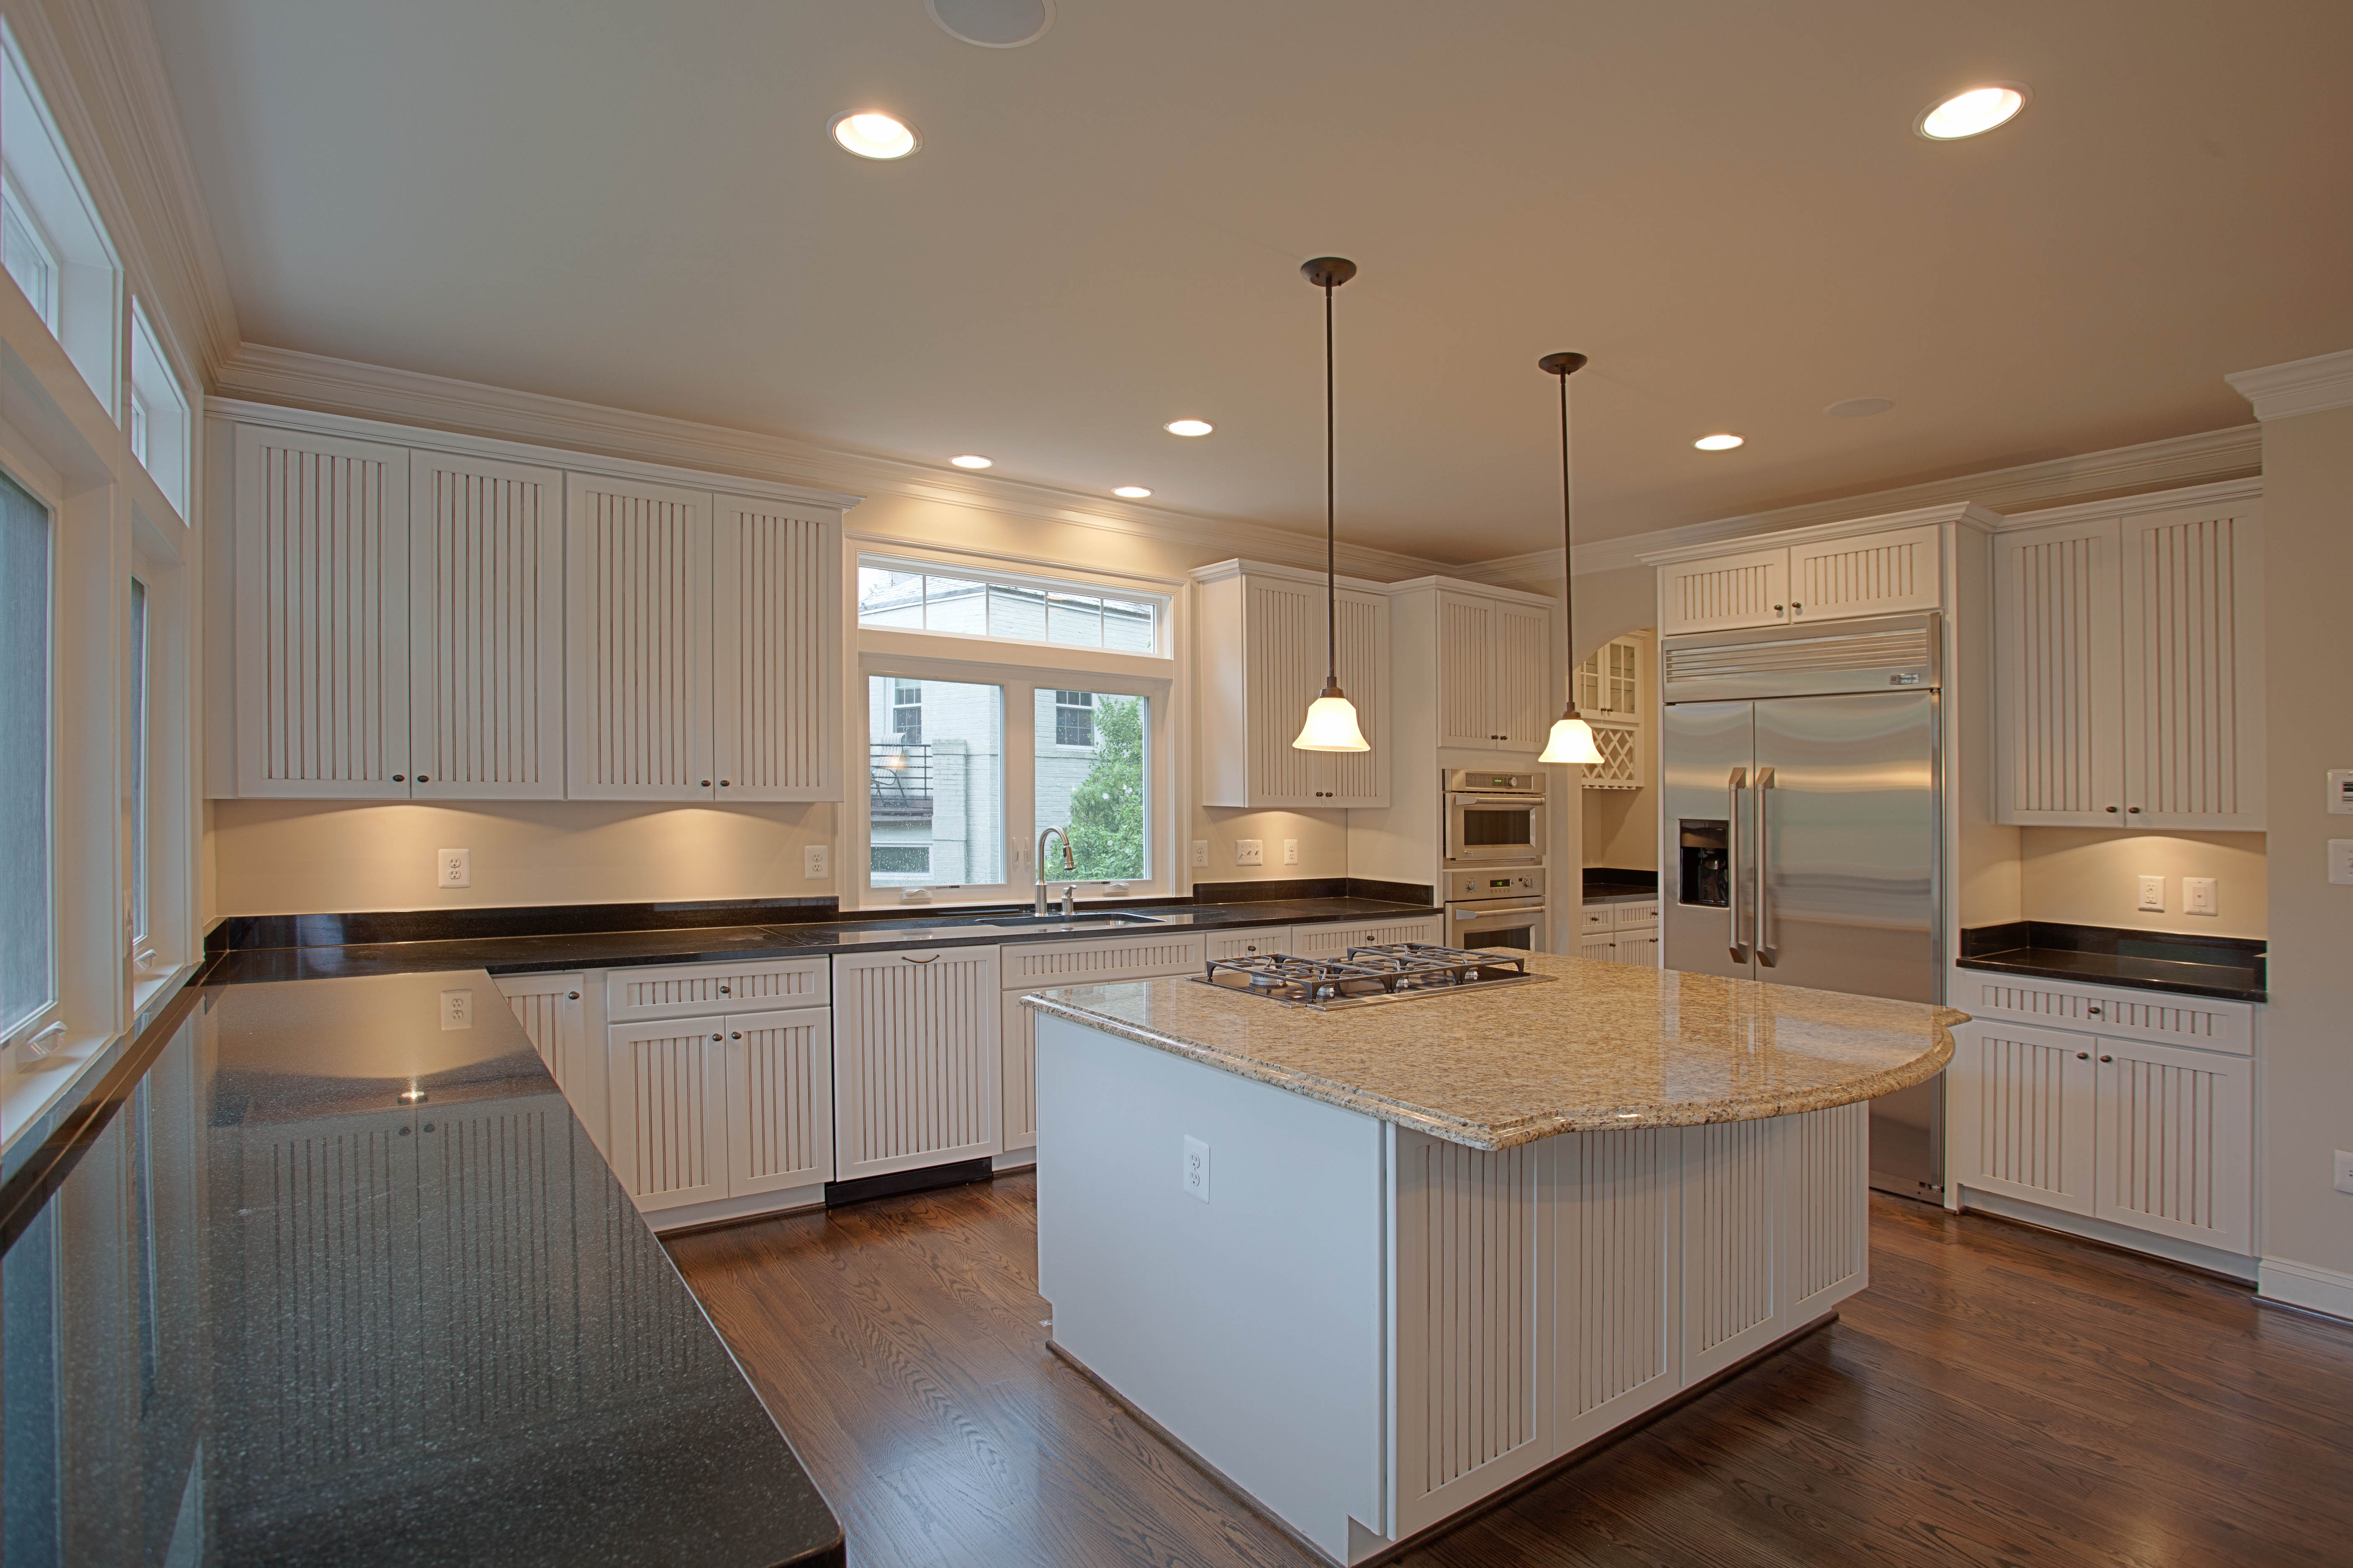 different color kitchen cabinets sink drain gasket have fun with your how to choose a island ndi i decided colored counter top on the in my home love having light hides fingerprints